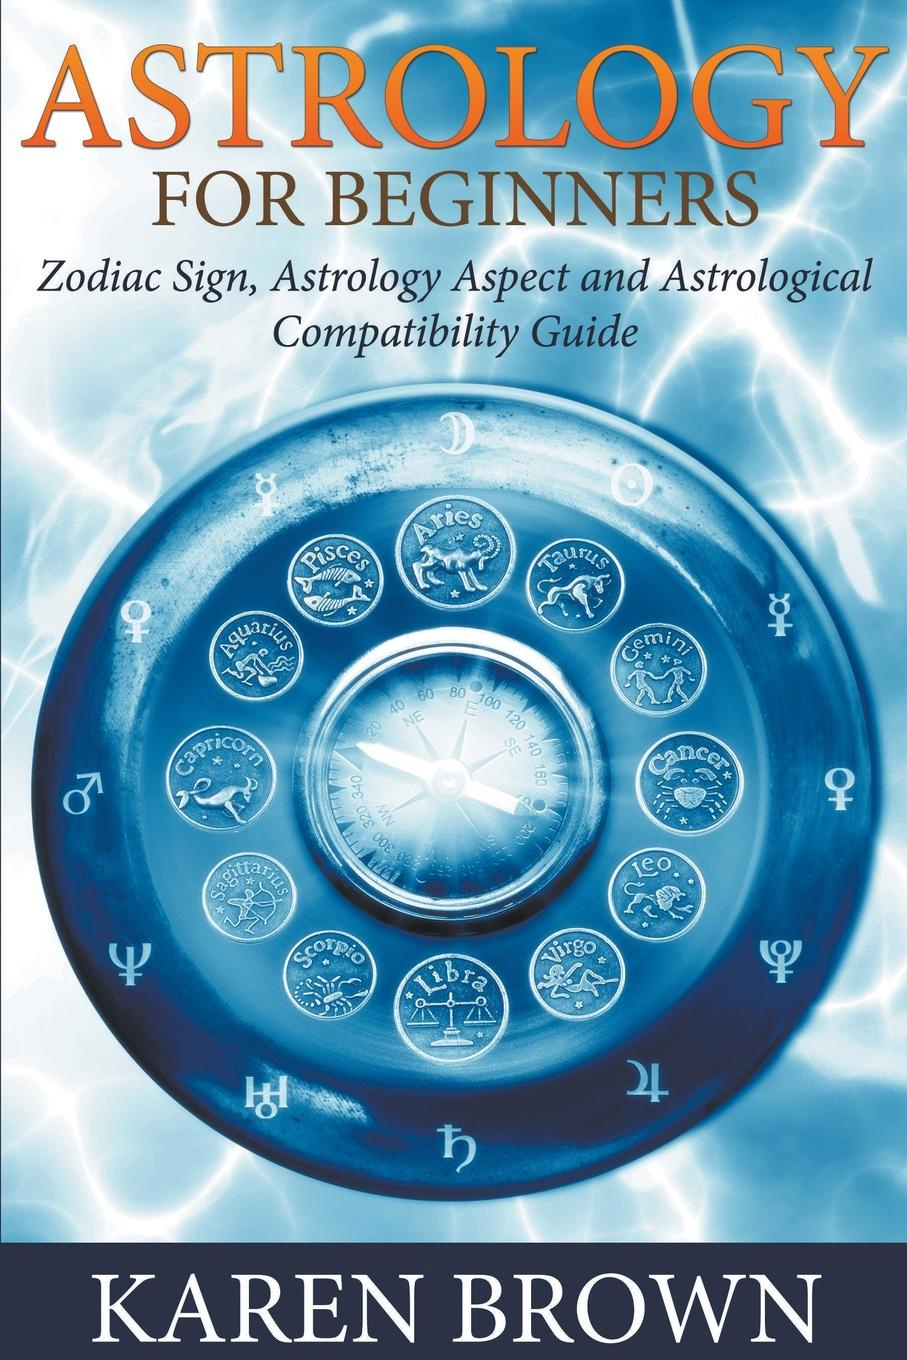 Karen Brown Astrology For Beginners. Zodiac Sign, Astrology Aspect and Astrological Compatibility Guide eucharist and living earth